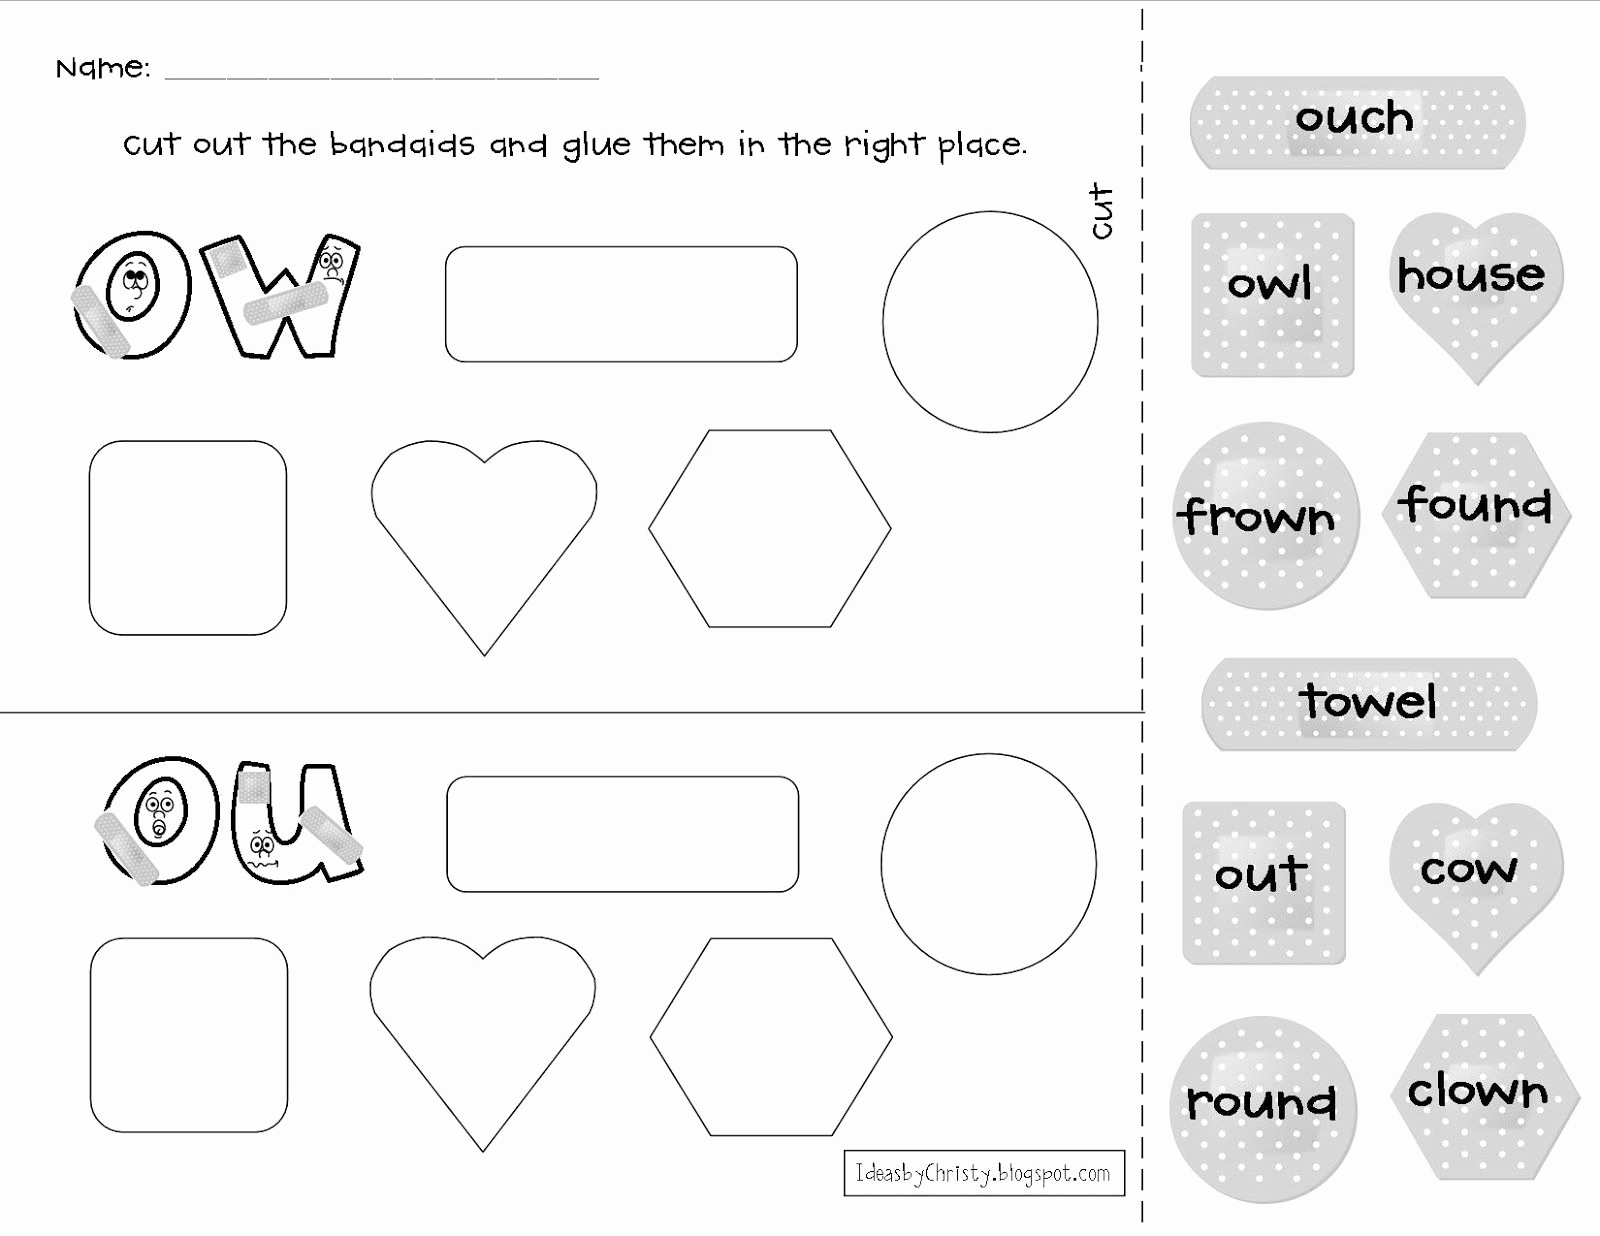 Ou Ow Worksheets 2nd Grade Best Of Ideas by Christy